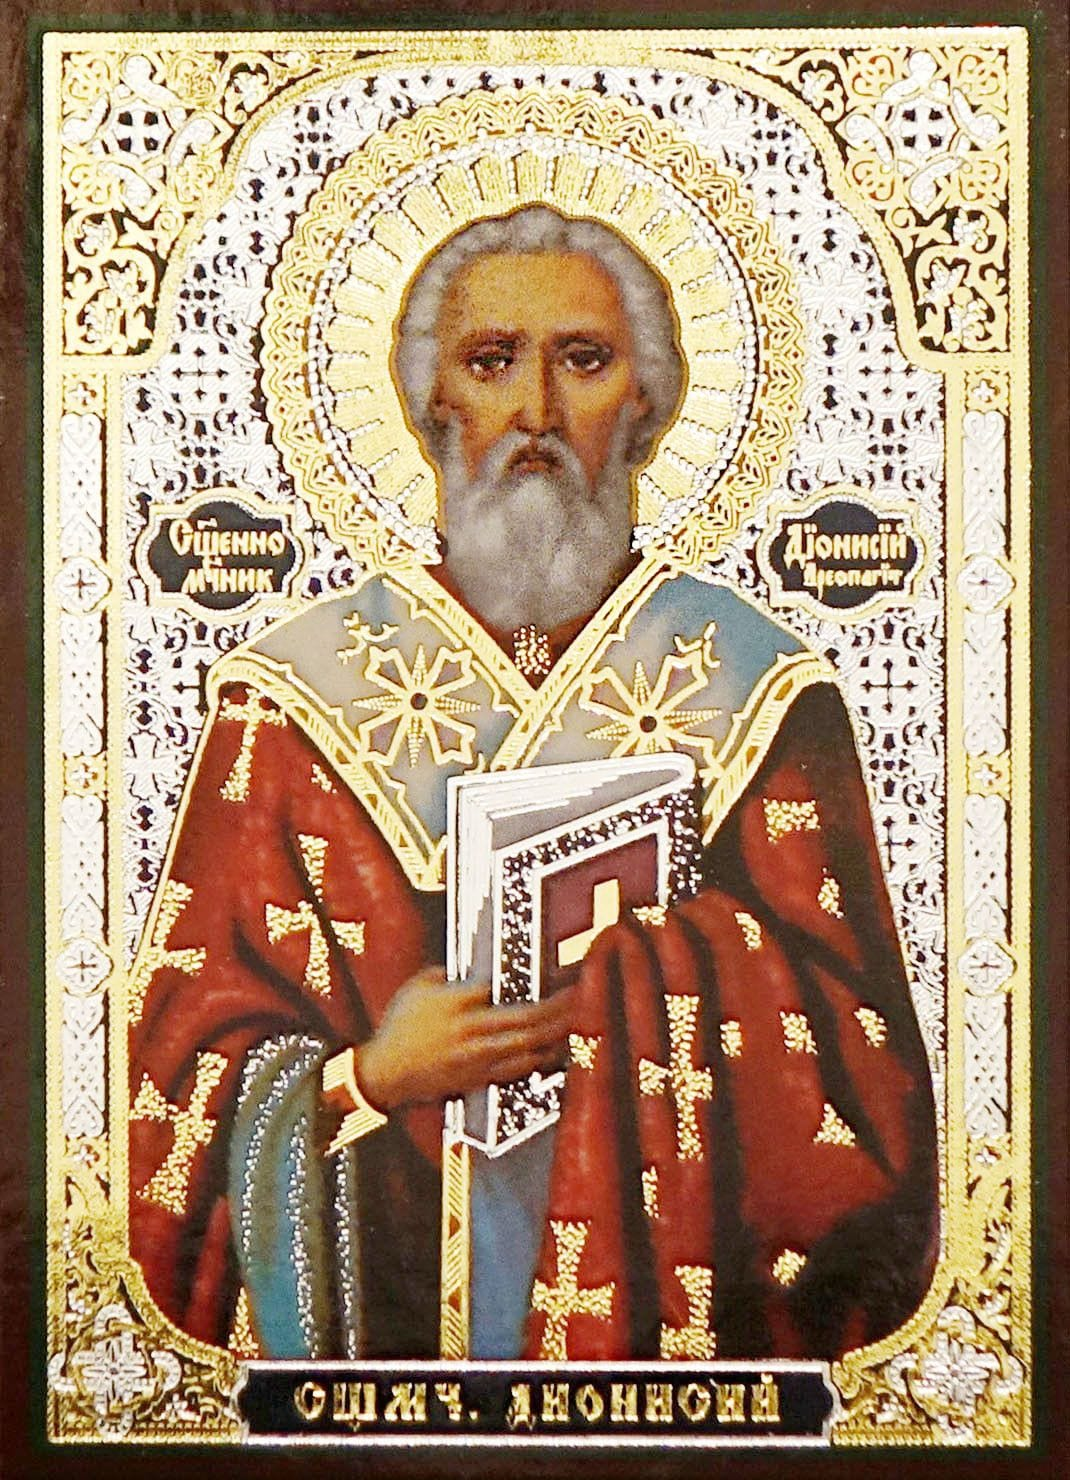 St. Dionysius the Areopagite, Bishop of Athens Icon